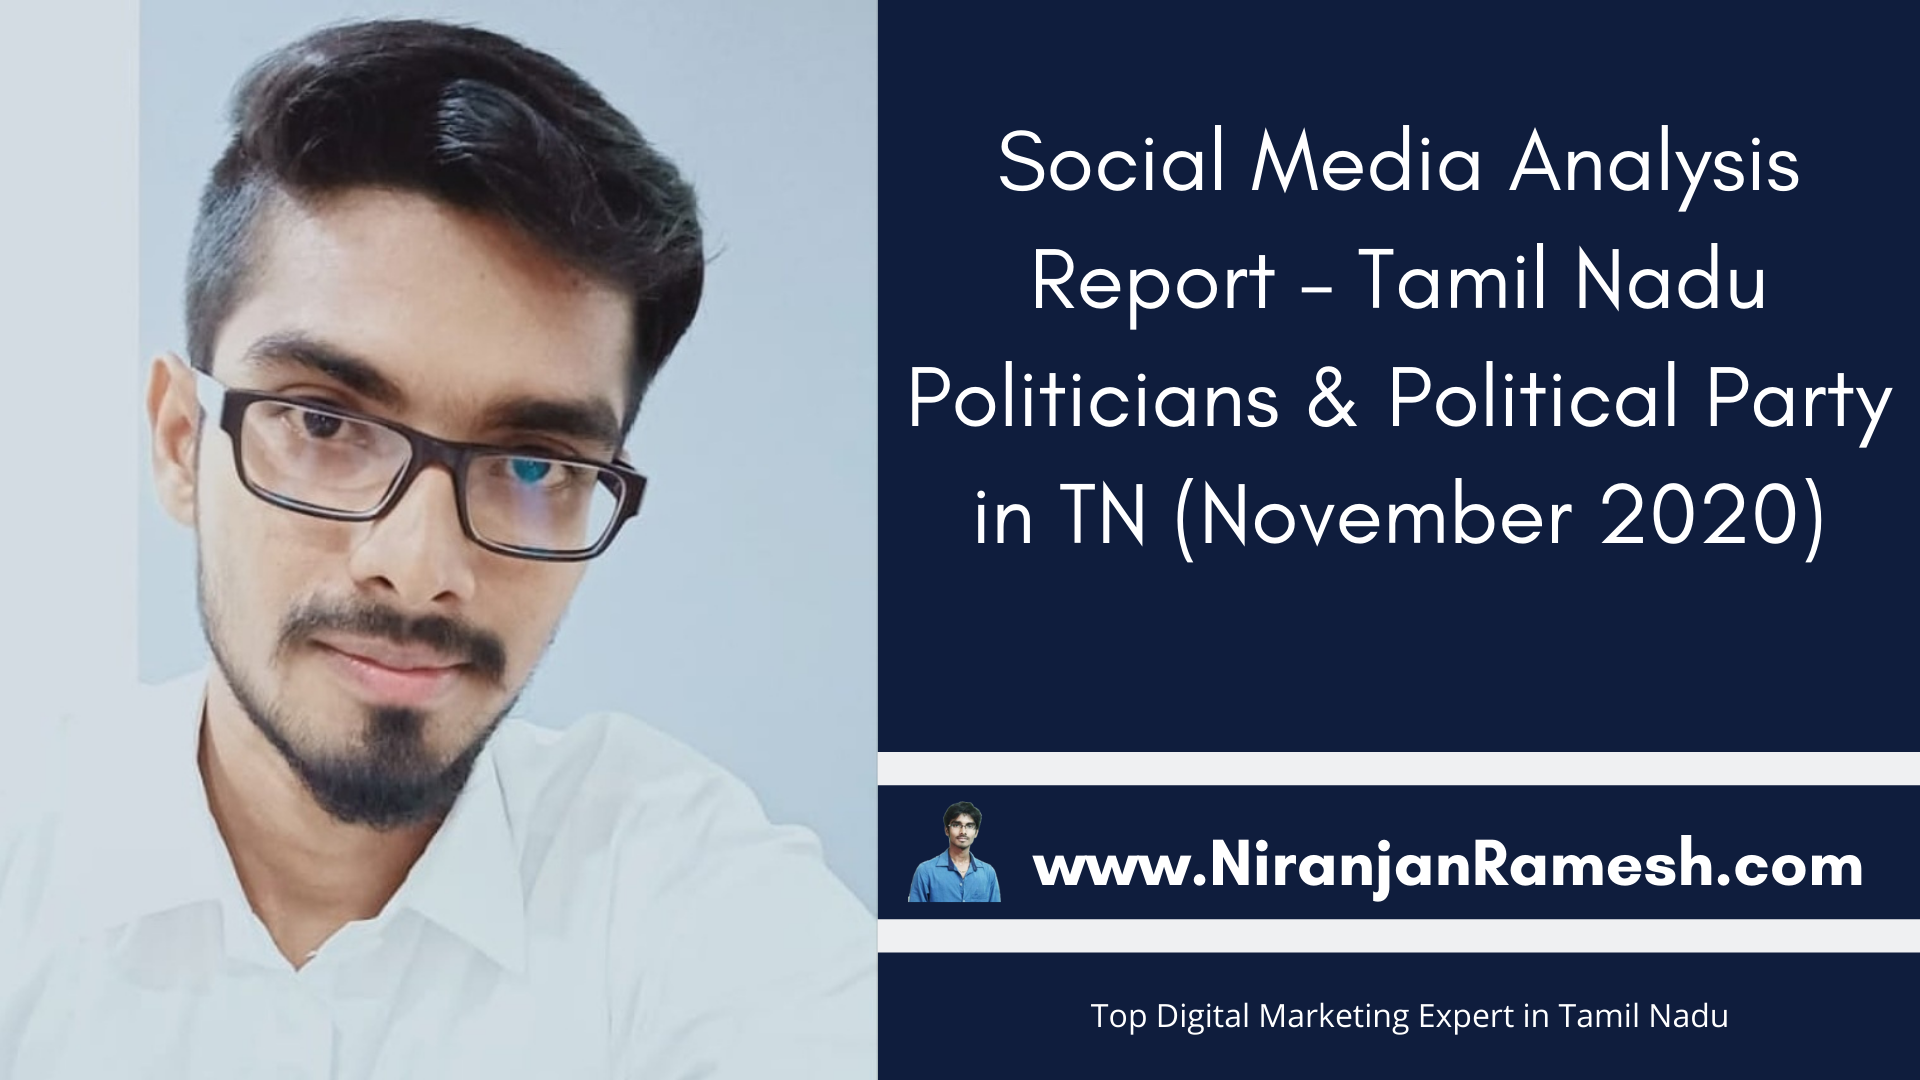 Social Media Analysis Report – Tamil Nadu Politicians & Political Party in TN (November 2020) (1)